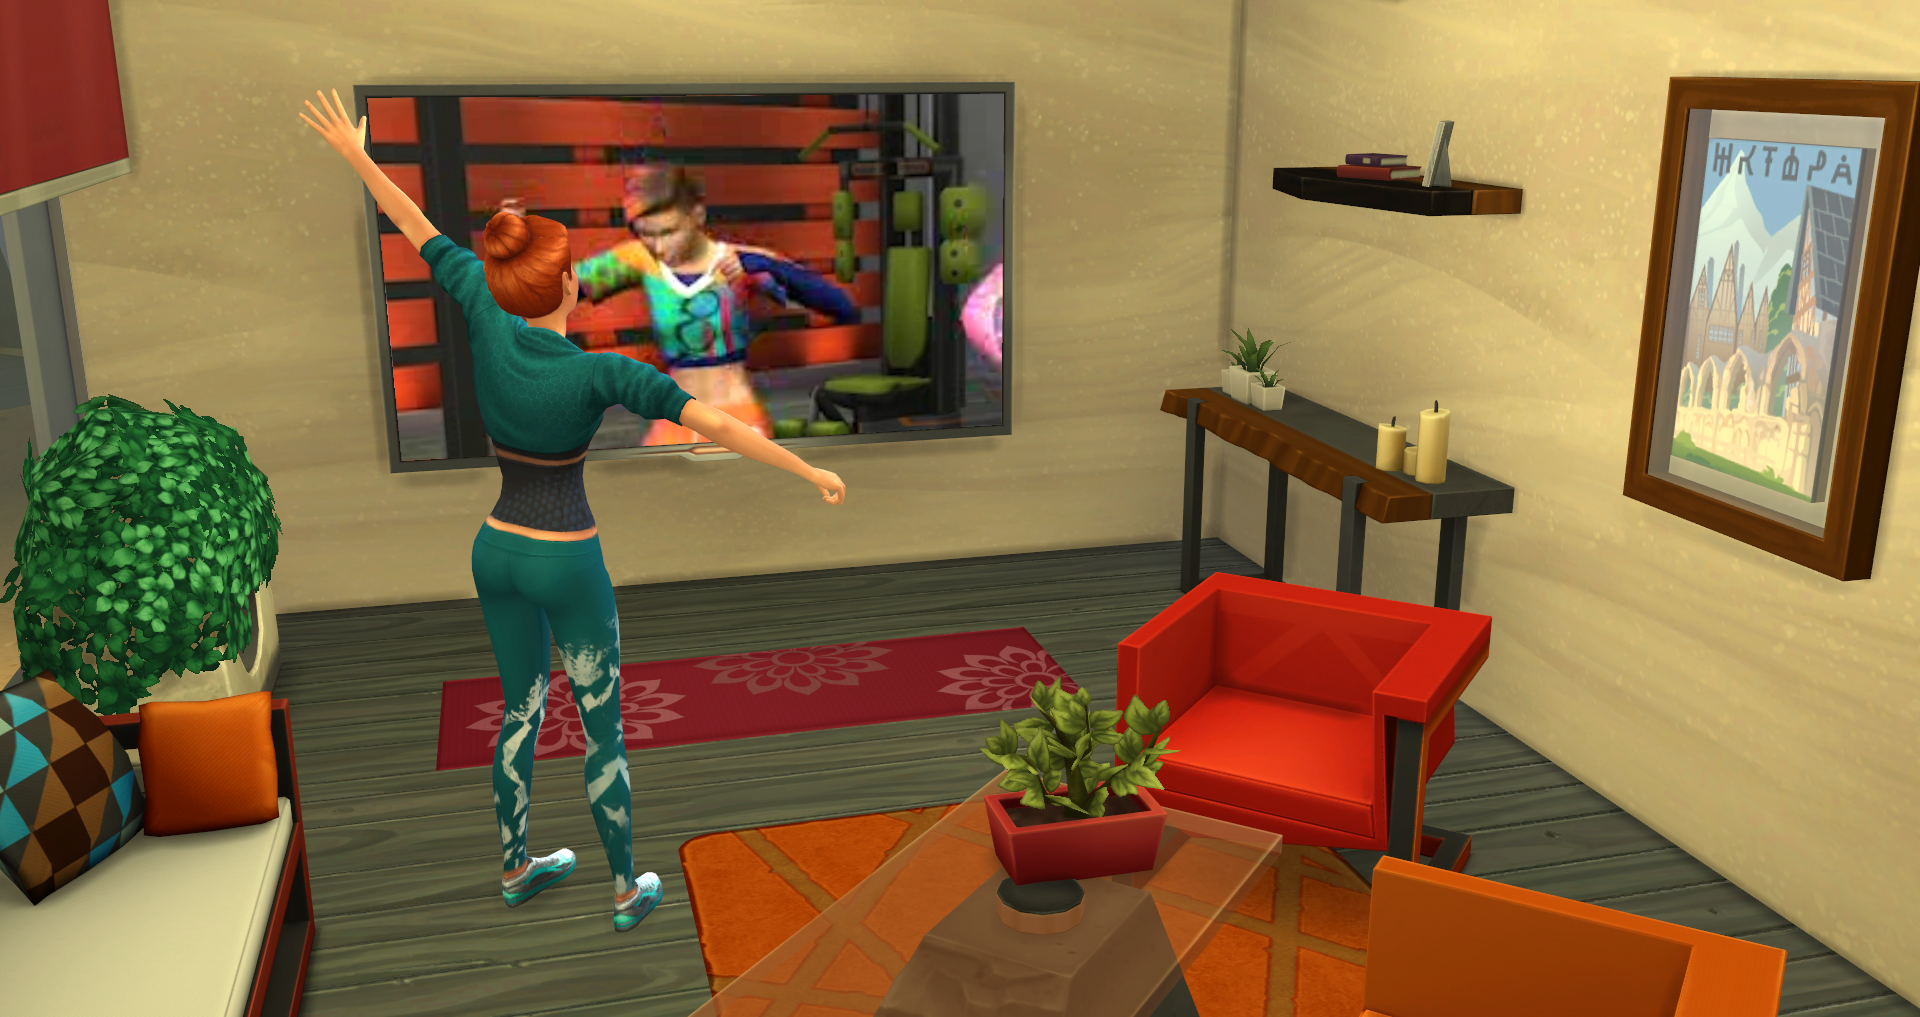 Sims will gain fitness skill while working out to custom workout videos on the tv the following workout options are available plumboomba dance video and